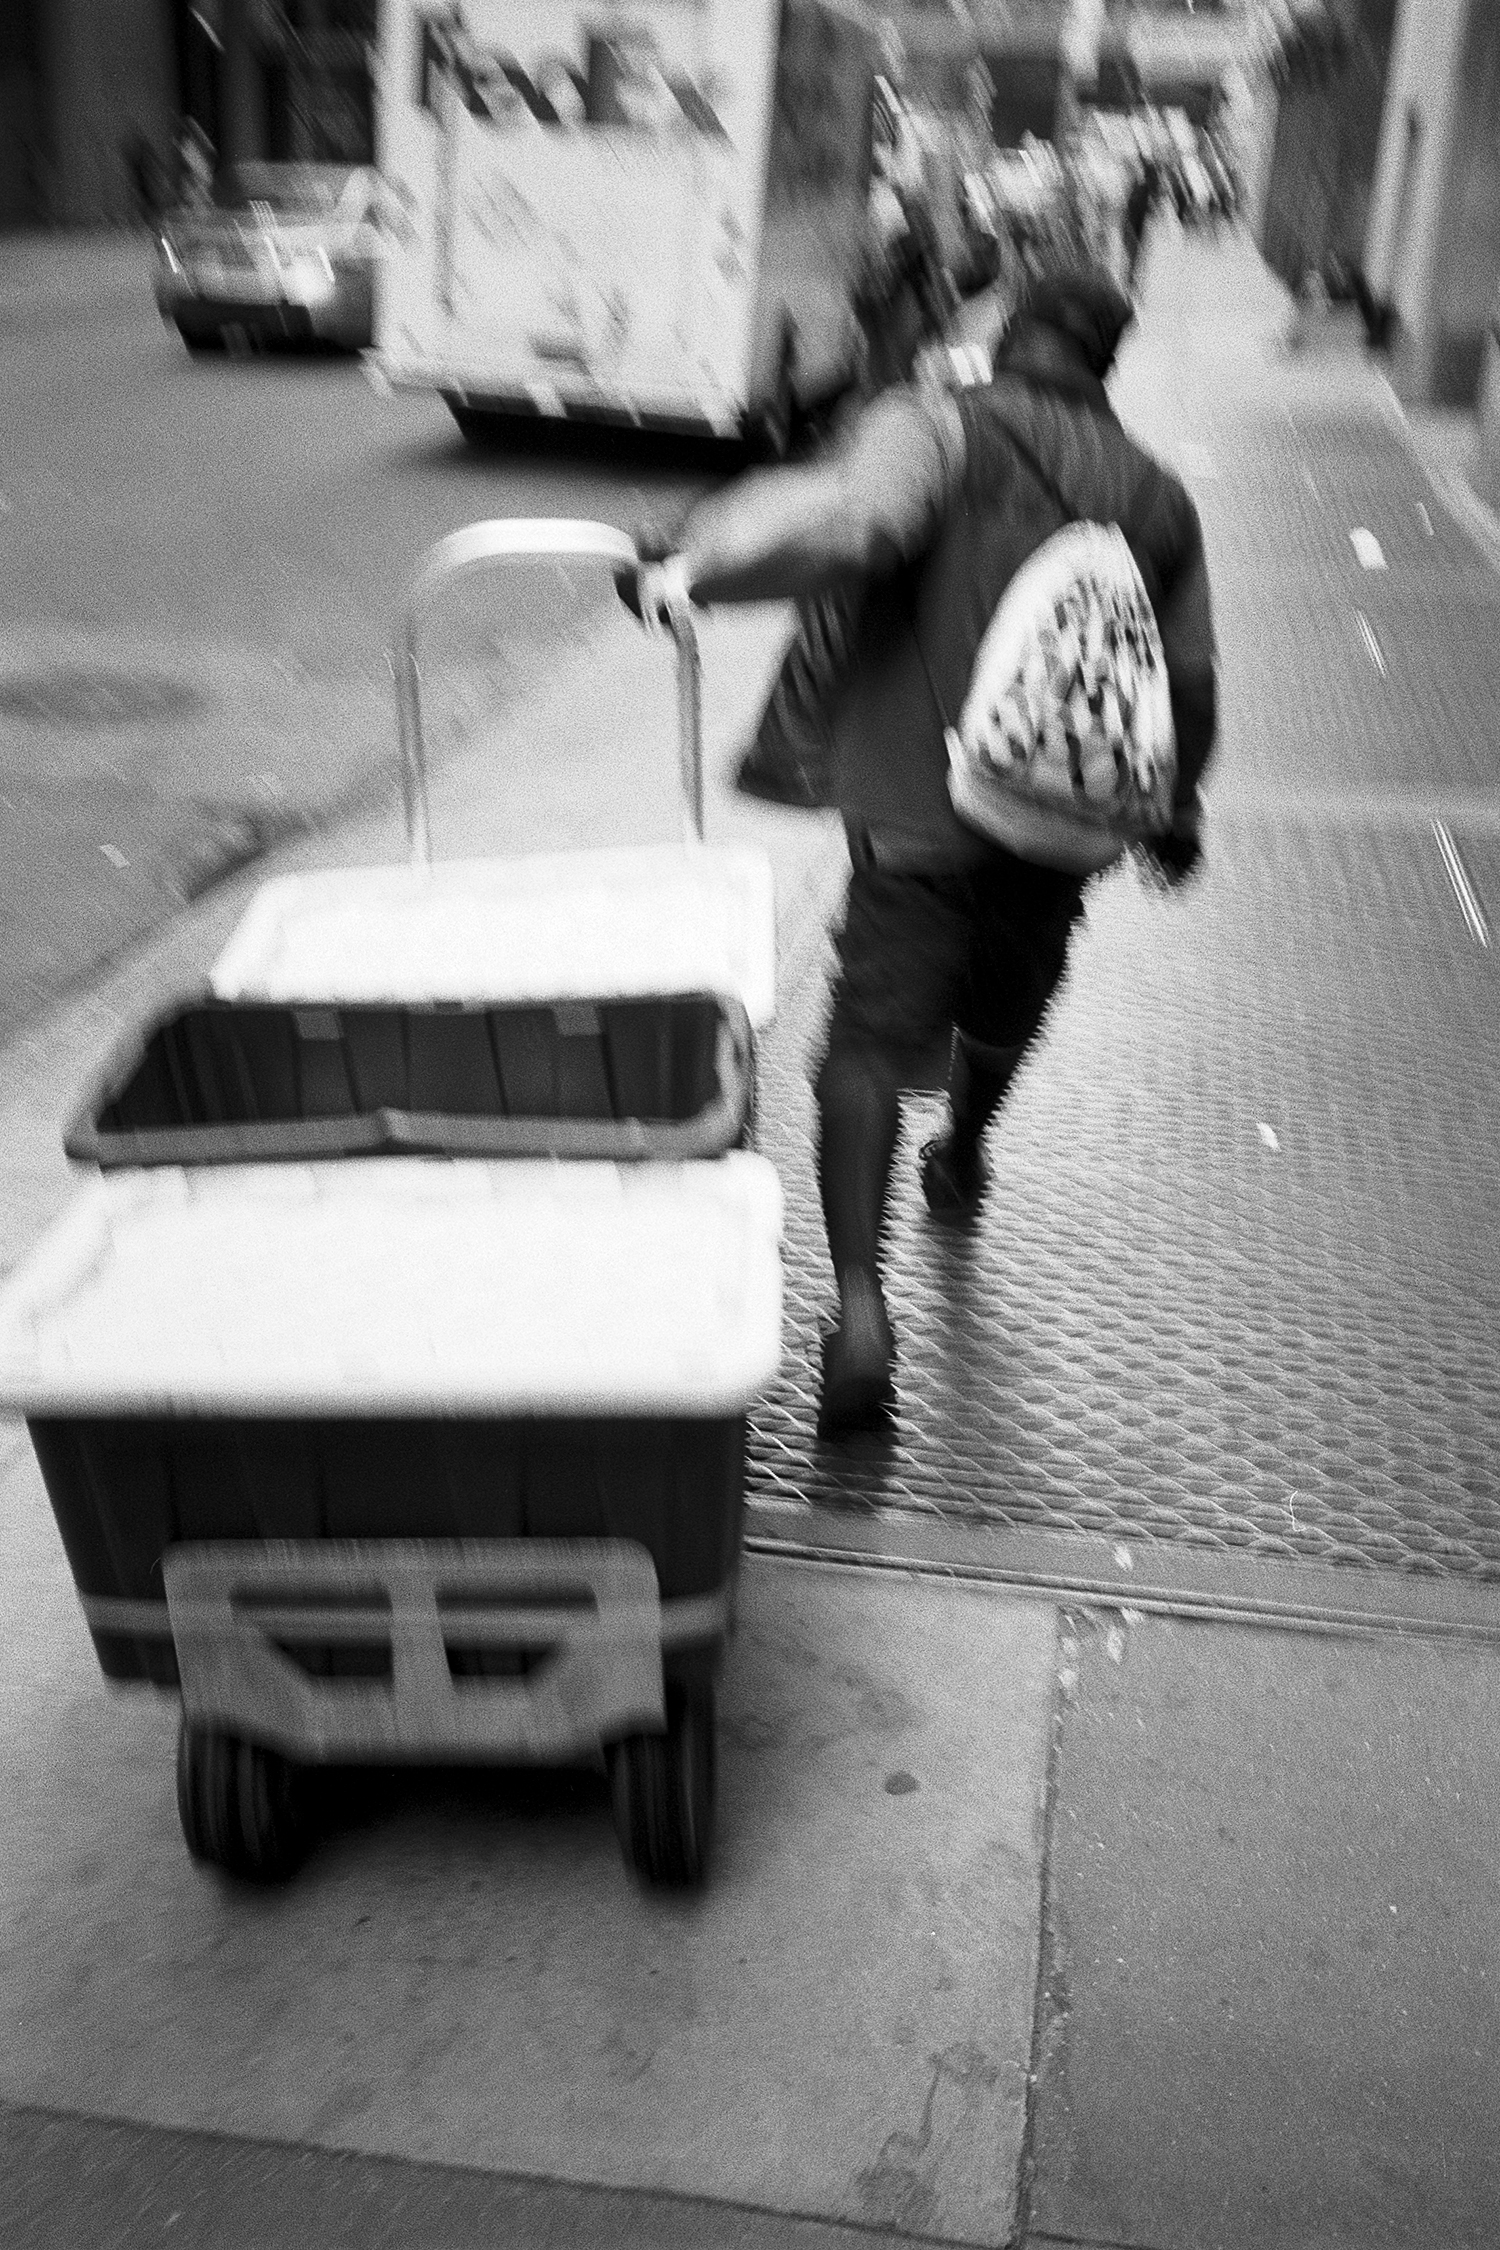 midtown-manhattan-handtruck.jpg